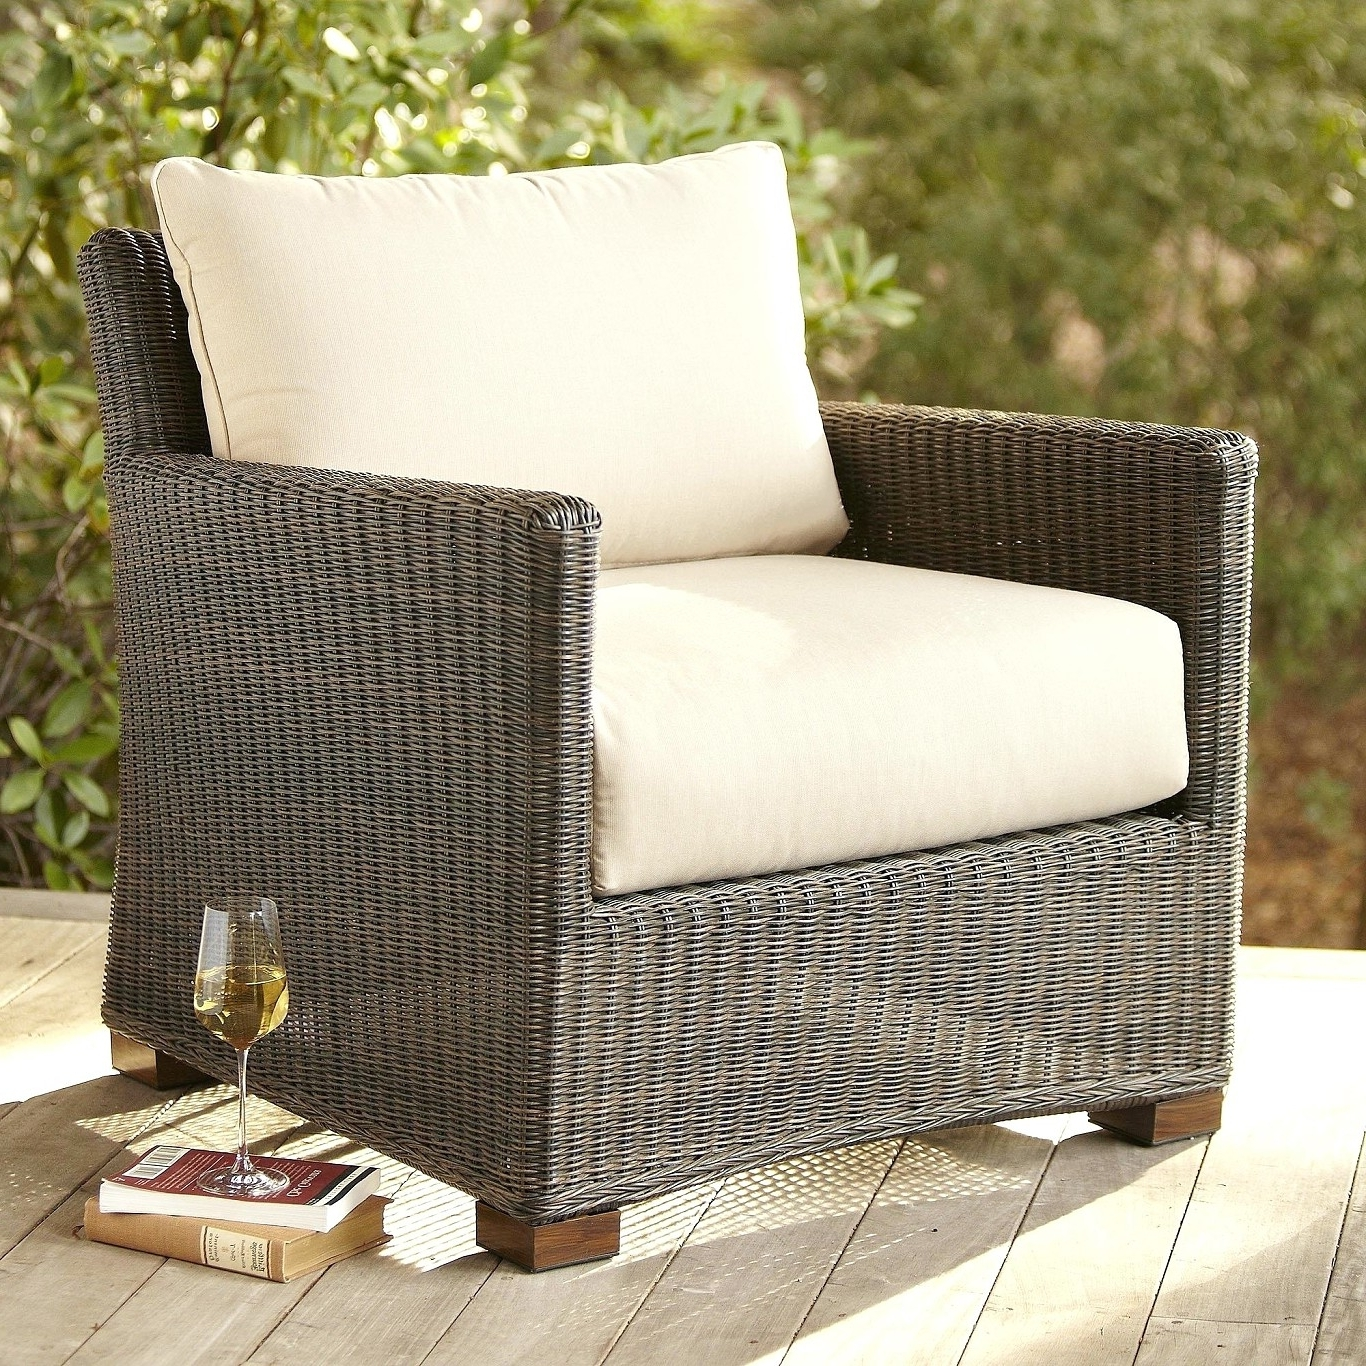 Sunbrella Chaise Lounge Sunbrella Patio Furniture Sams Club Regarding Popular Macys Outdoor Chaise Lounge Chairs (View 12 of 15)